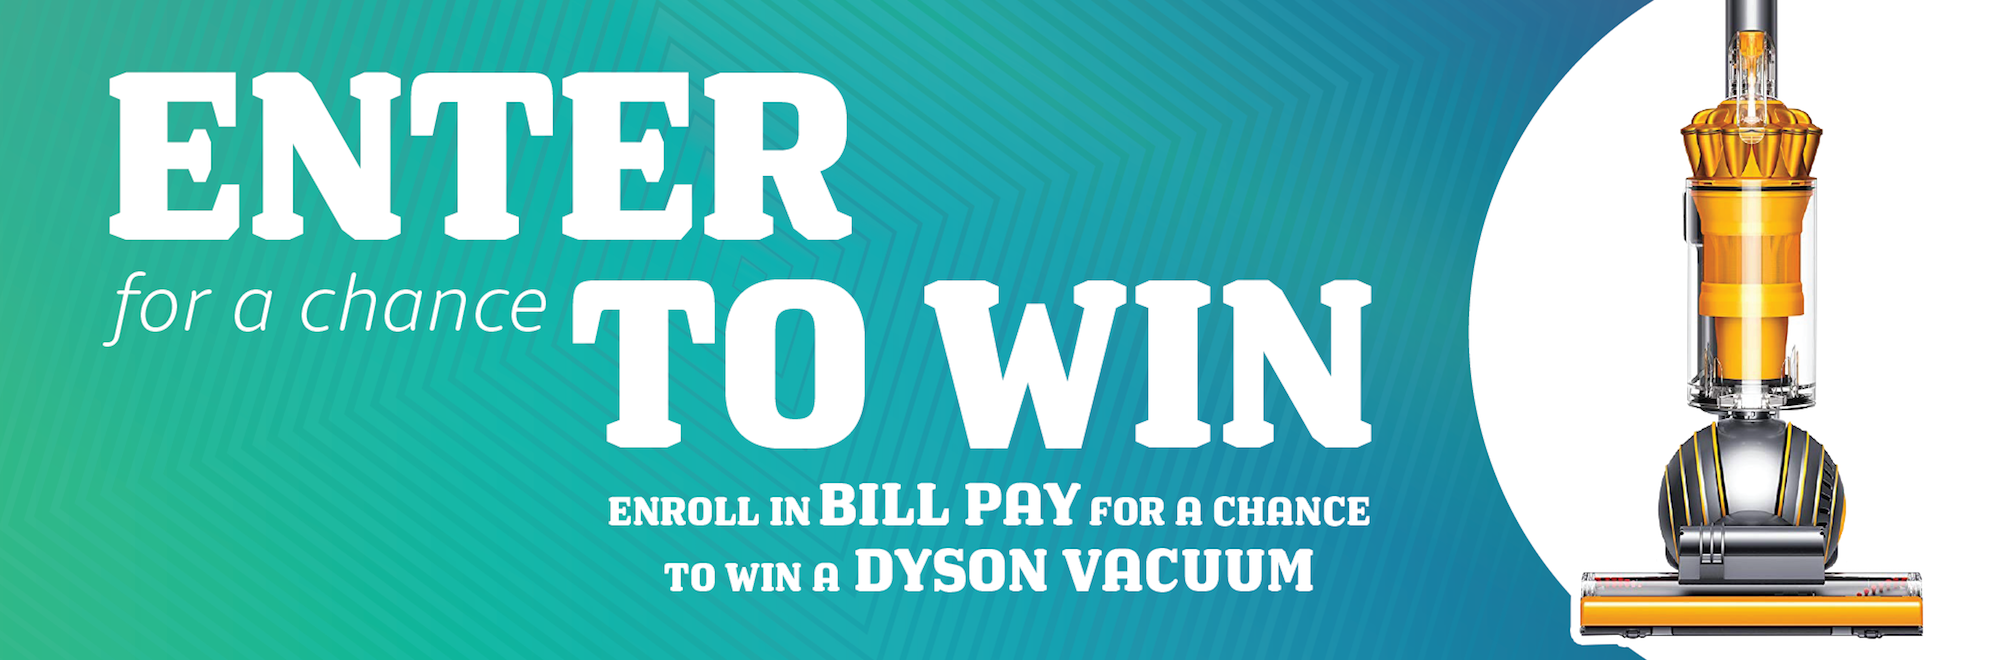 """Image of a Dyson Vaccuum with text reading """"Enter for a chance to win by enrolling in Bill Pay"""""""